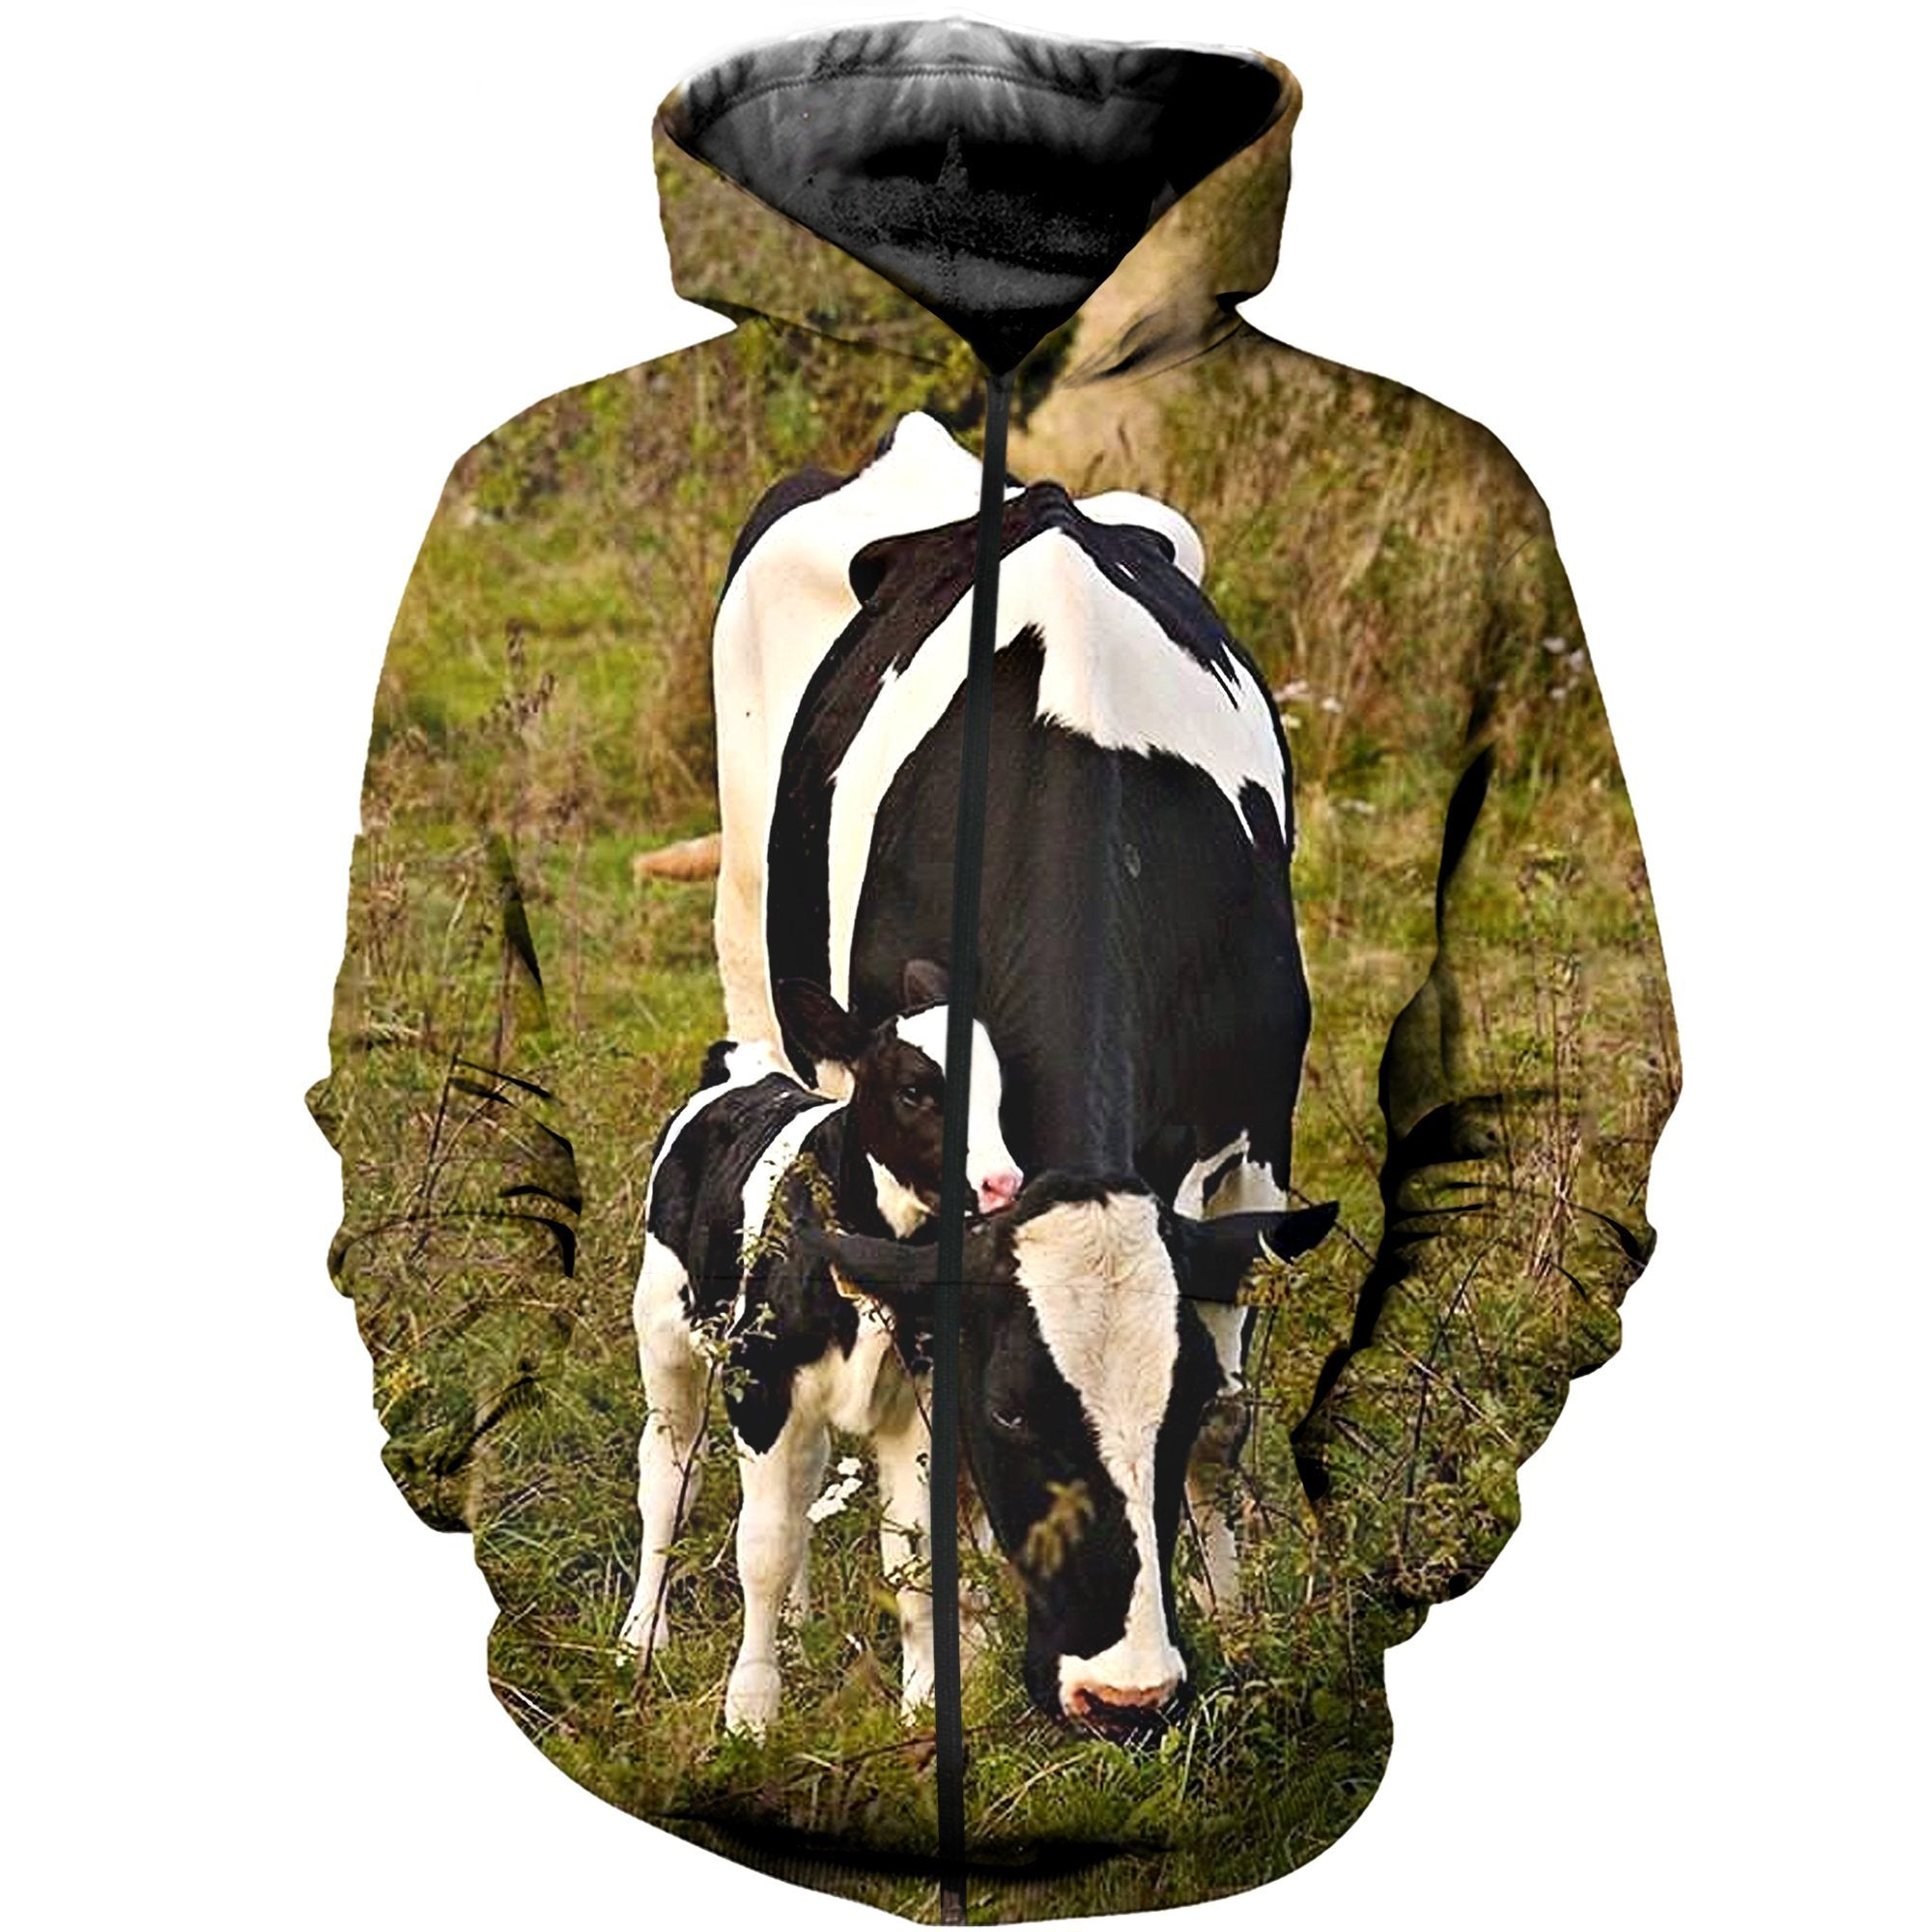 3D printed Dairy Cows Clothes